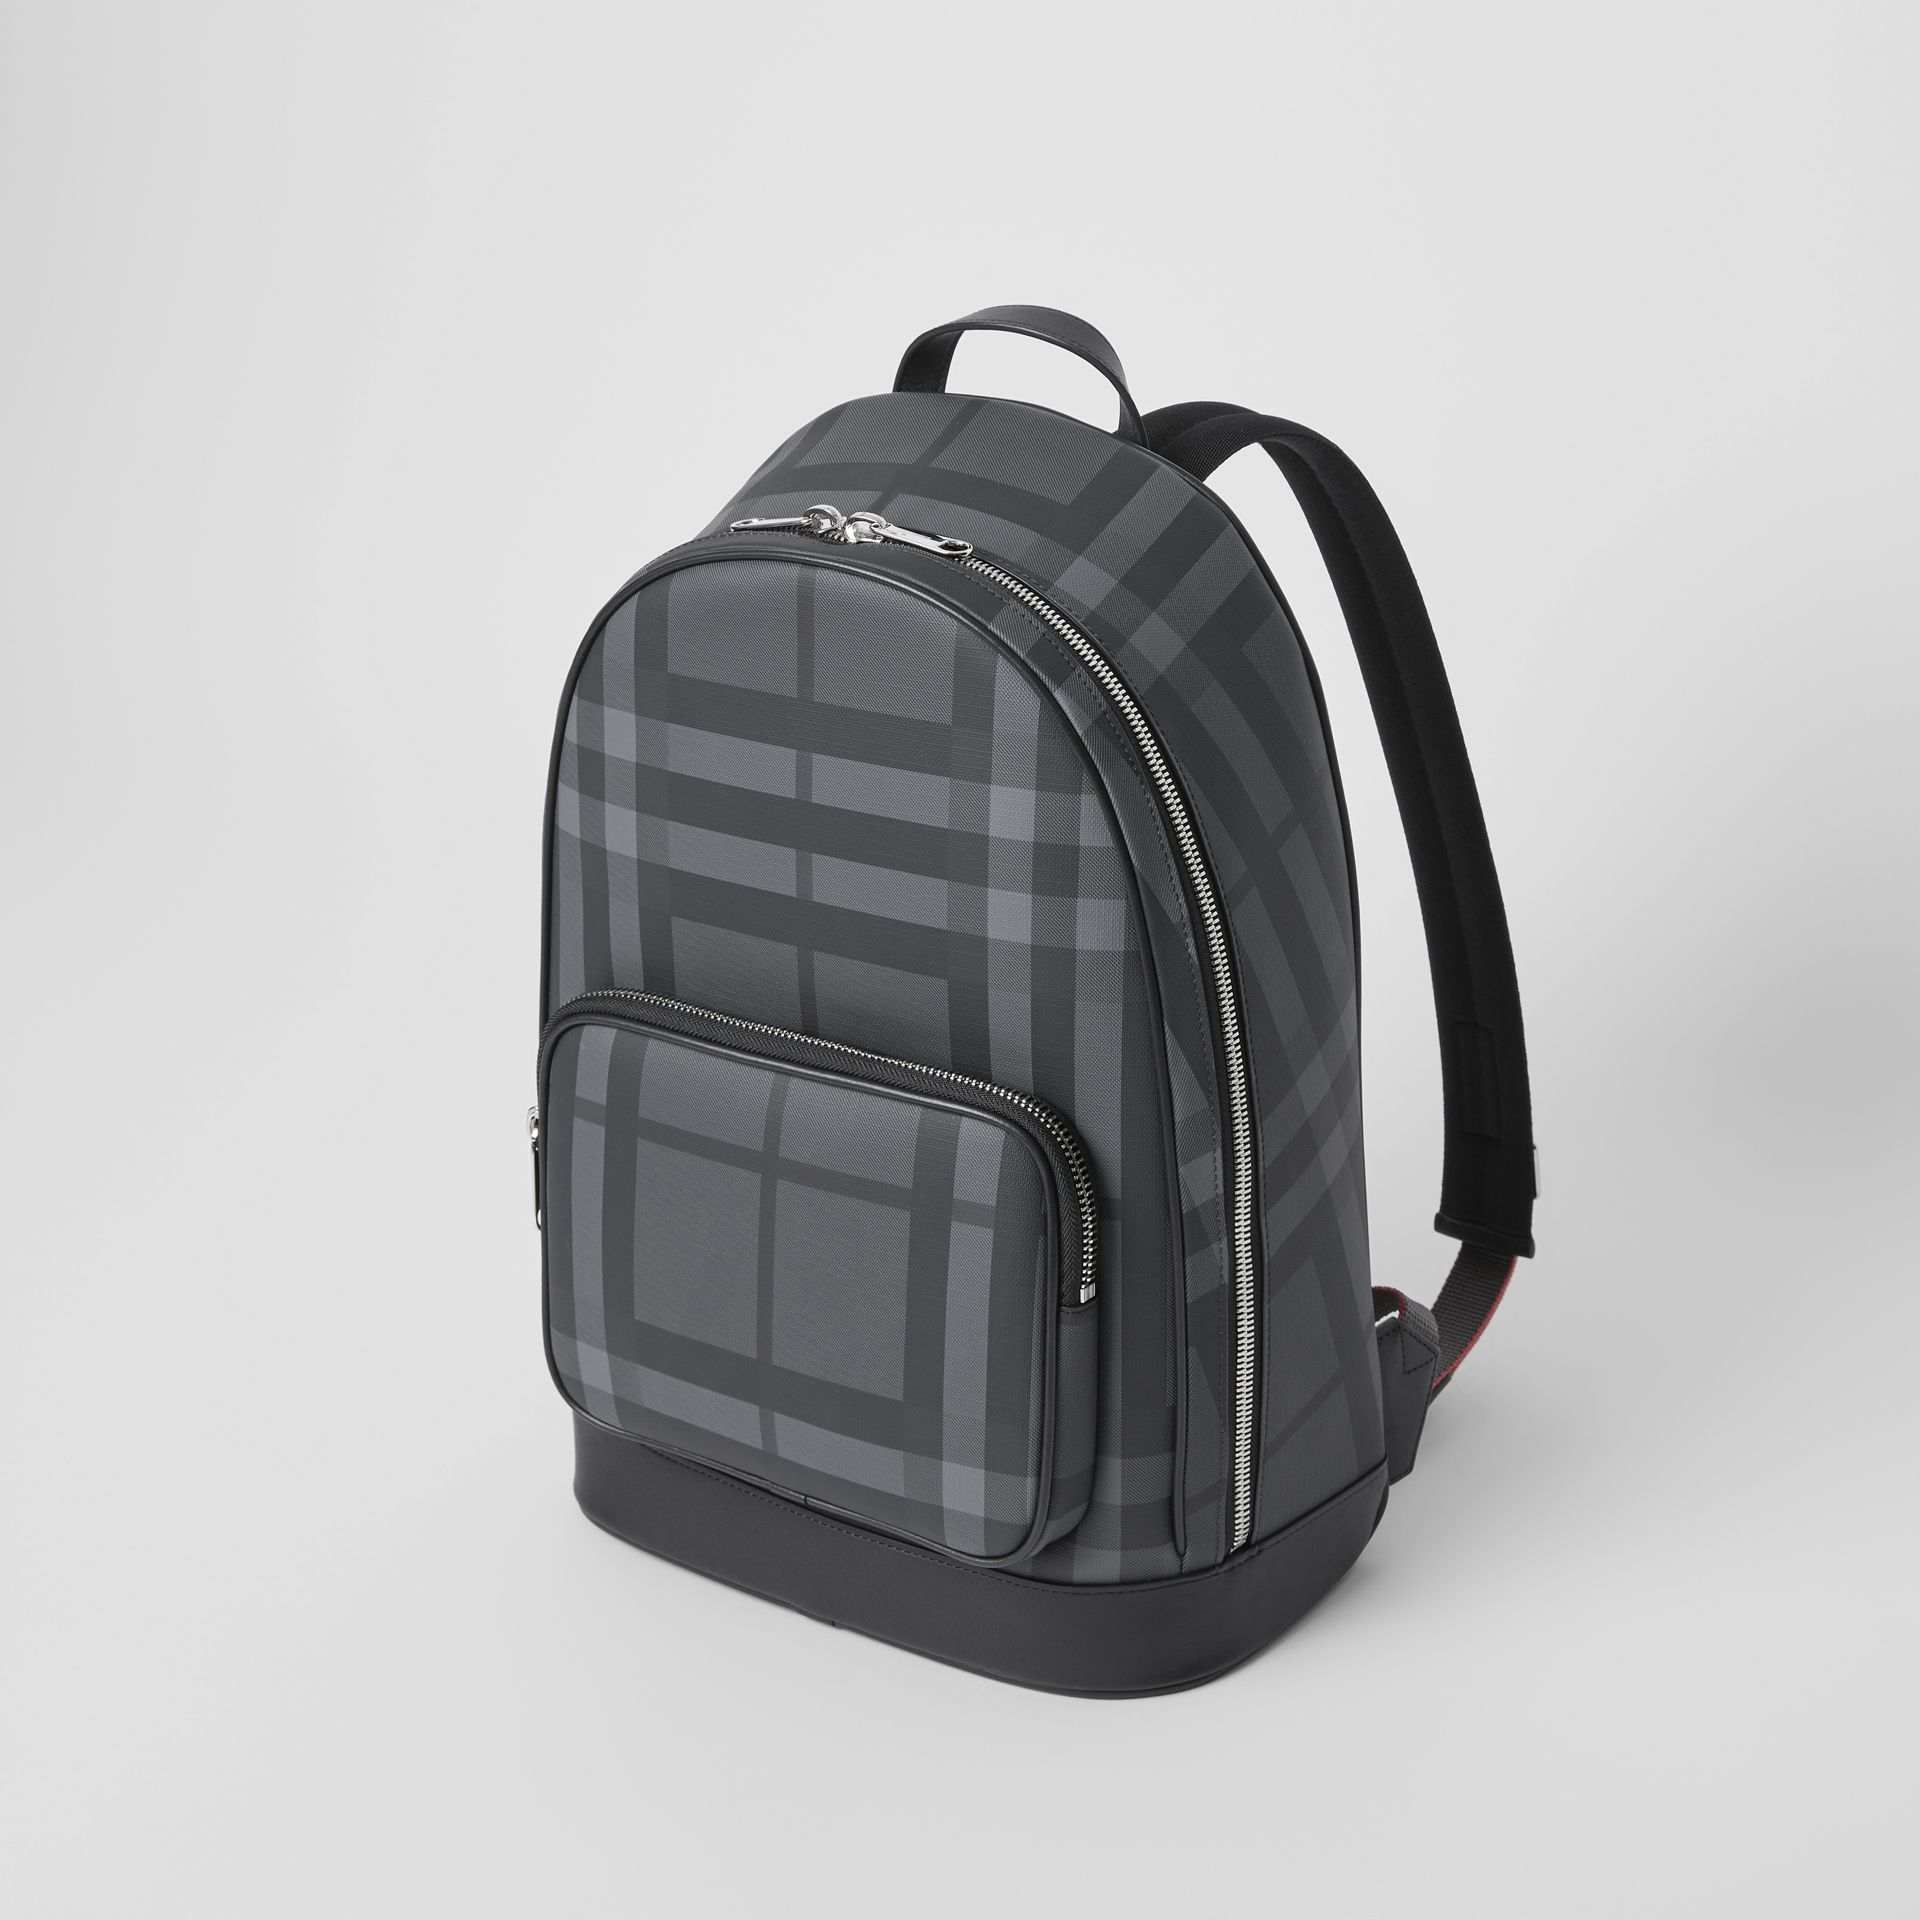 London Check and Leather Backpack in Charcoal/black - Men | Burberry United States - gallery image 4